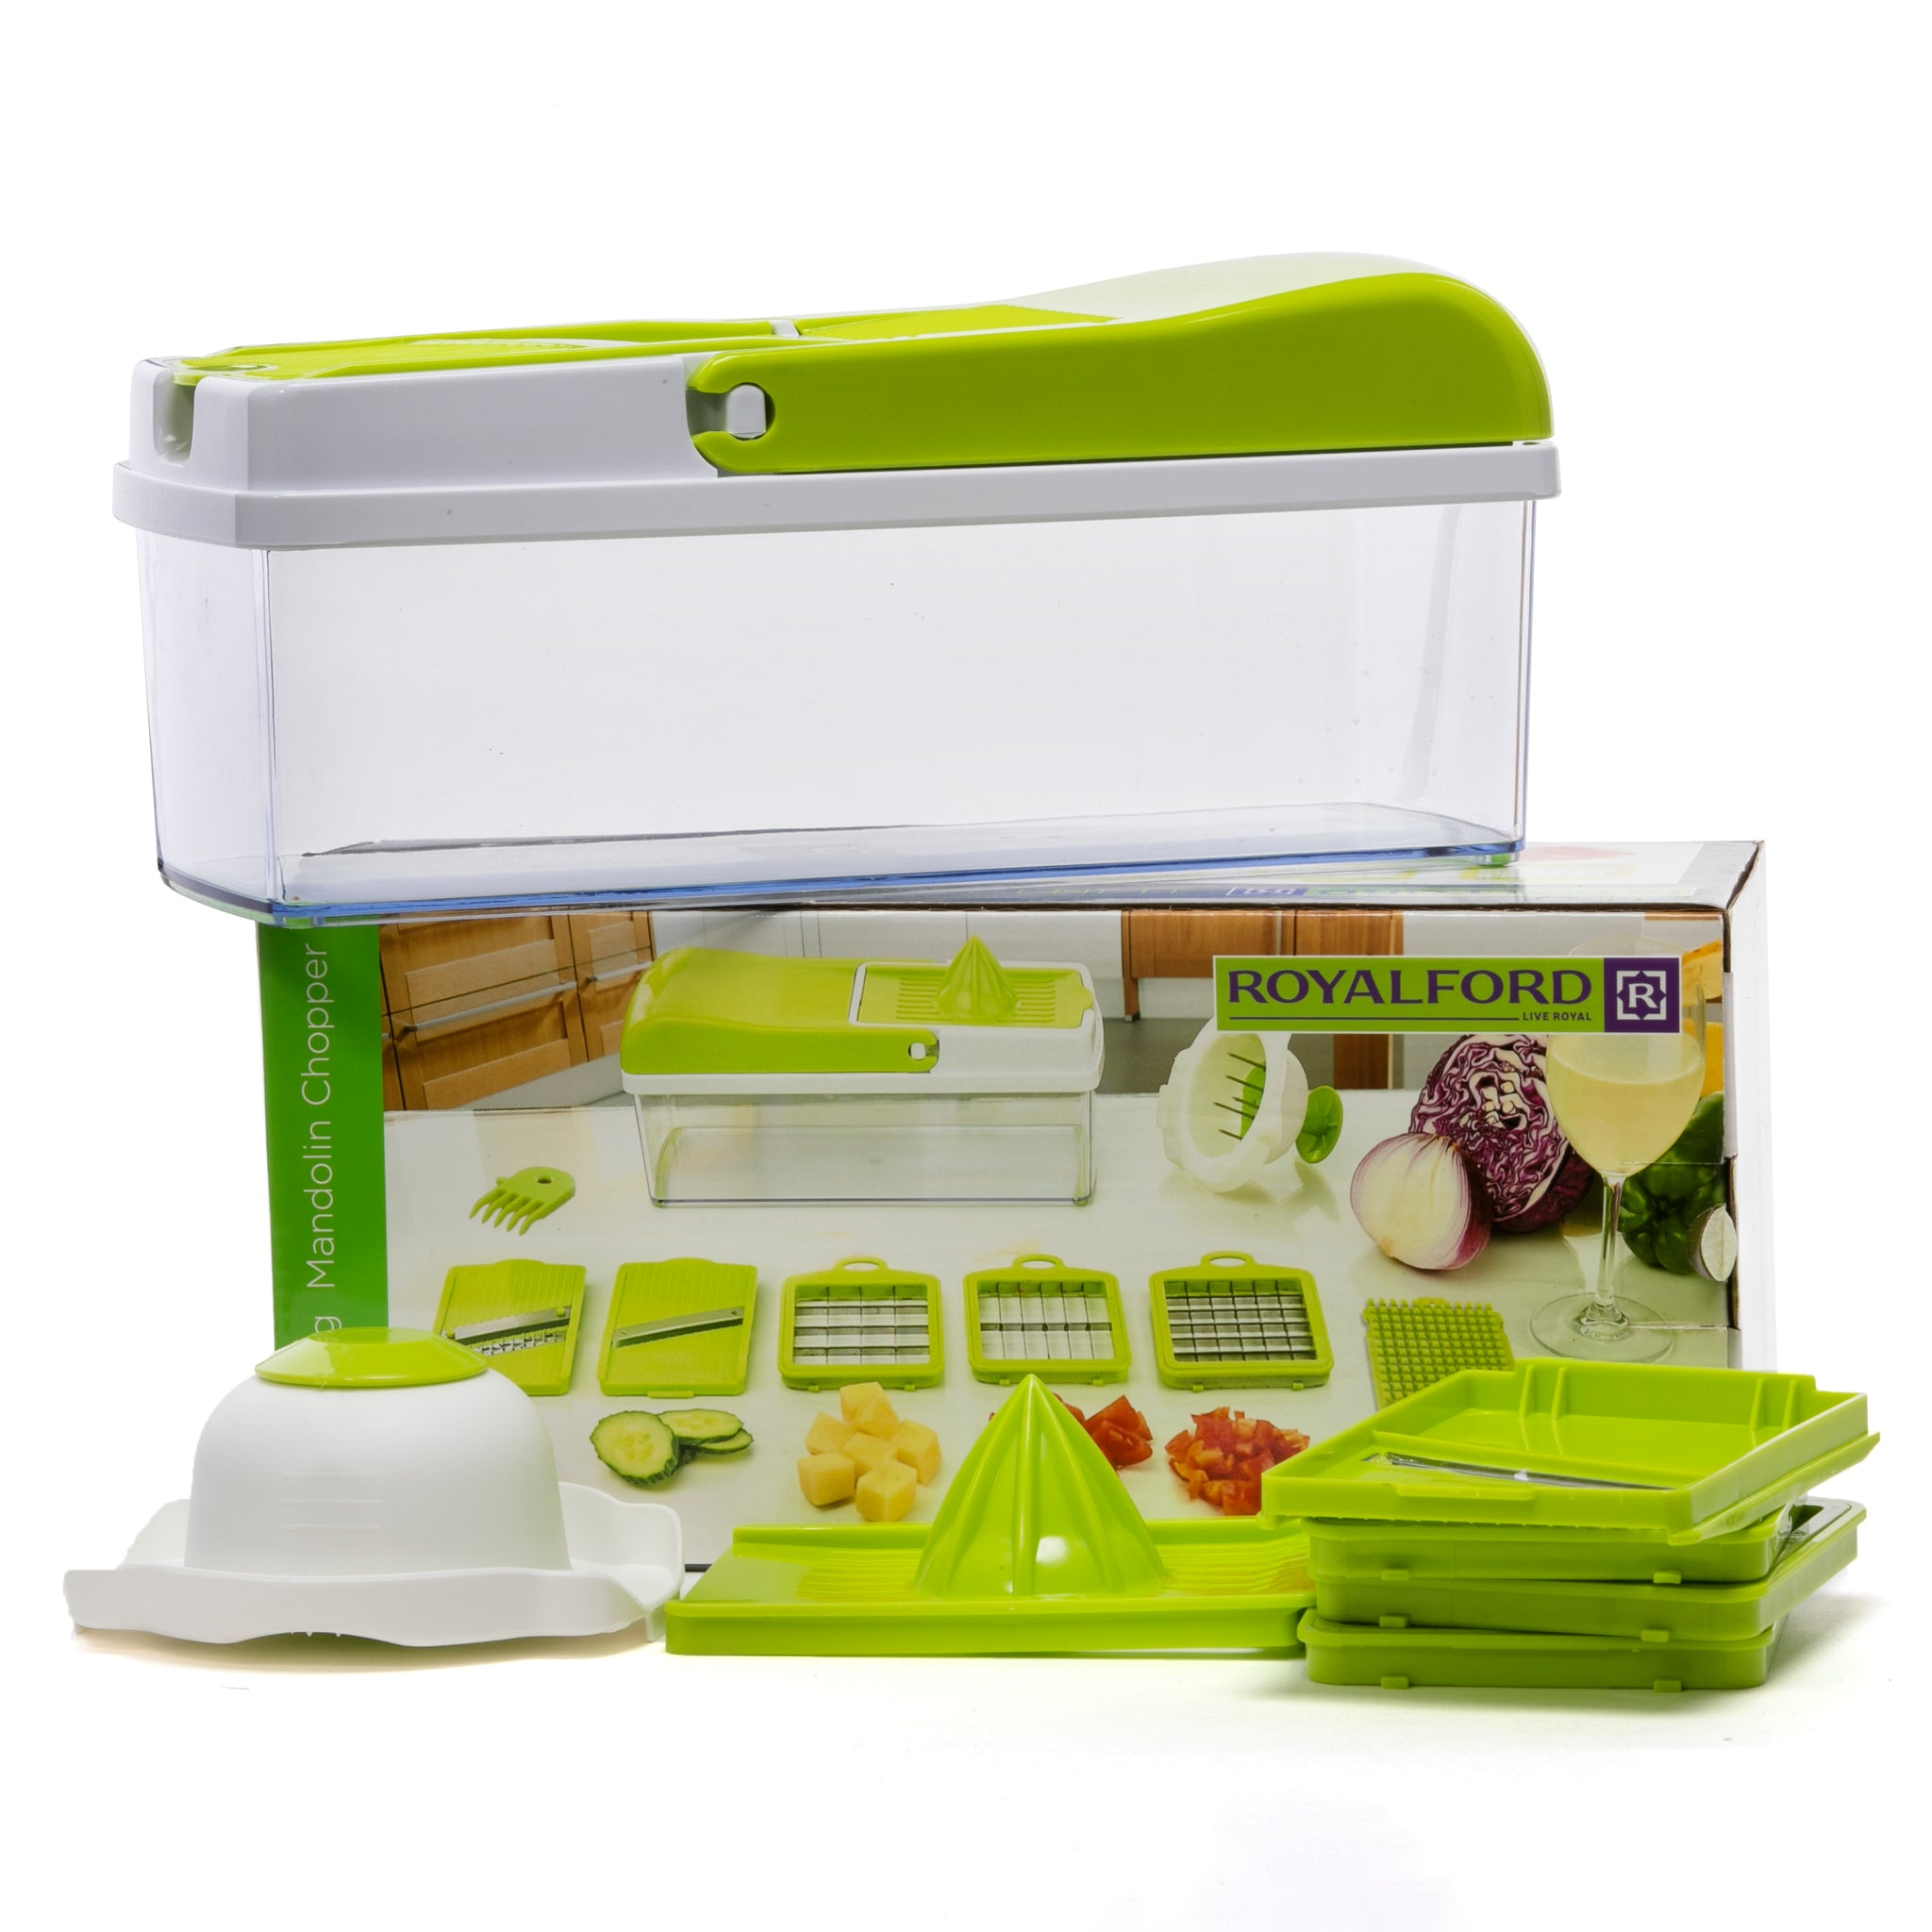 Royalford RF7767 3 in 1 Magic Chopper, Multi-Purpose Kitchen Gadget, Instant Food Chopper-Cutter-Peelers-Slicer